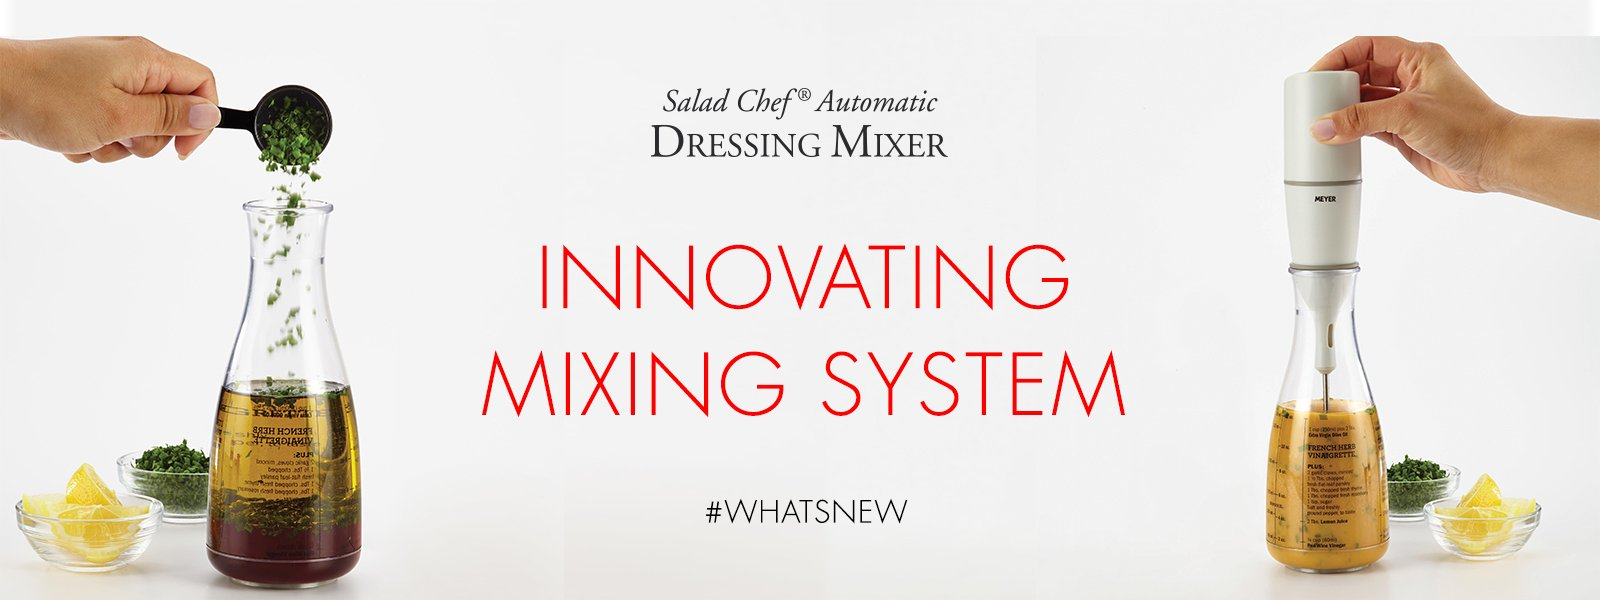 Introducing sleek dressing maker, Meyer Salad Chef!